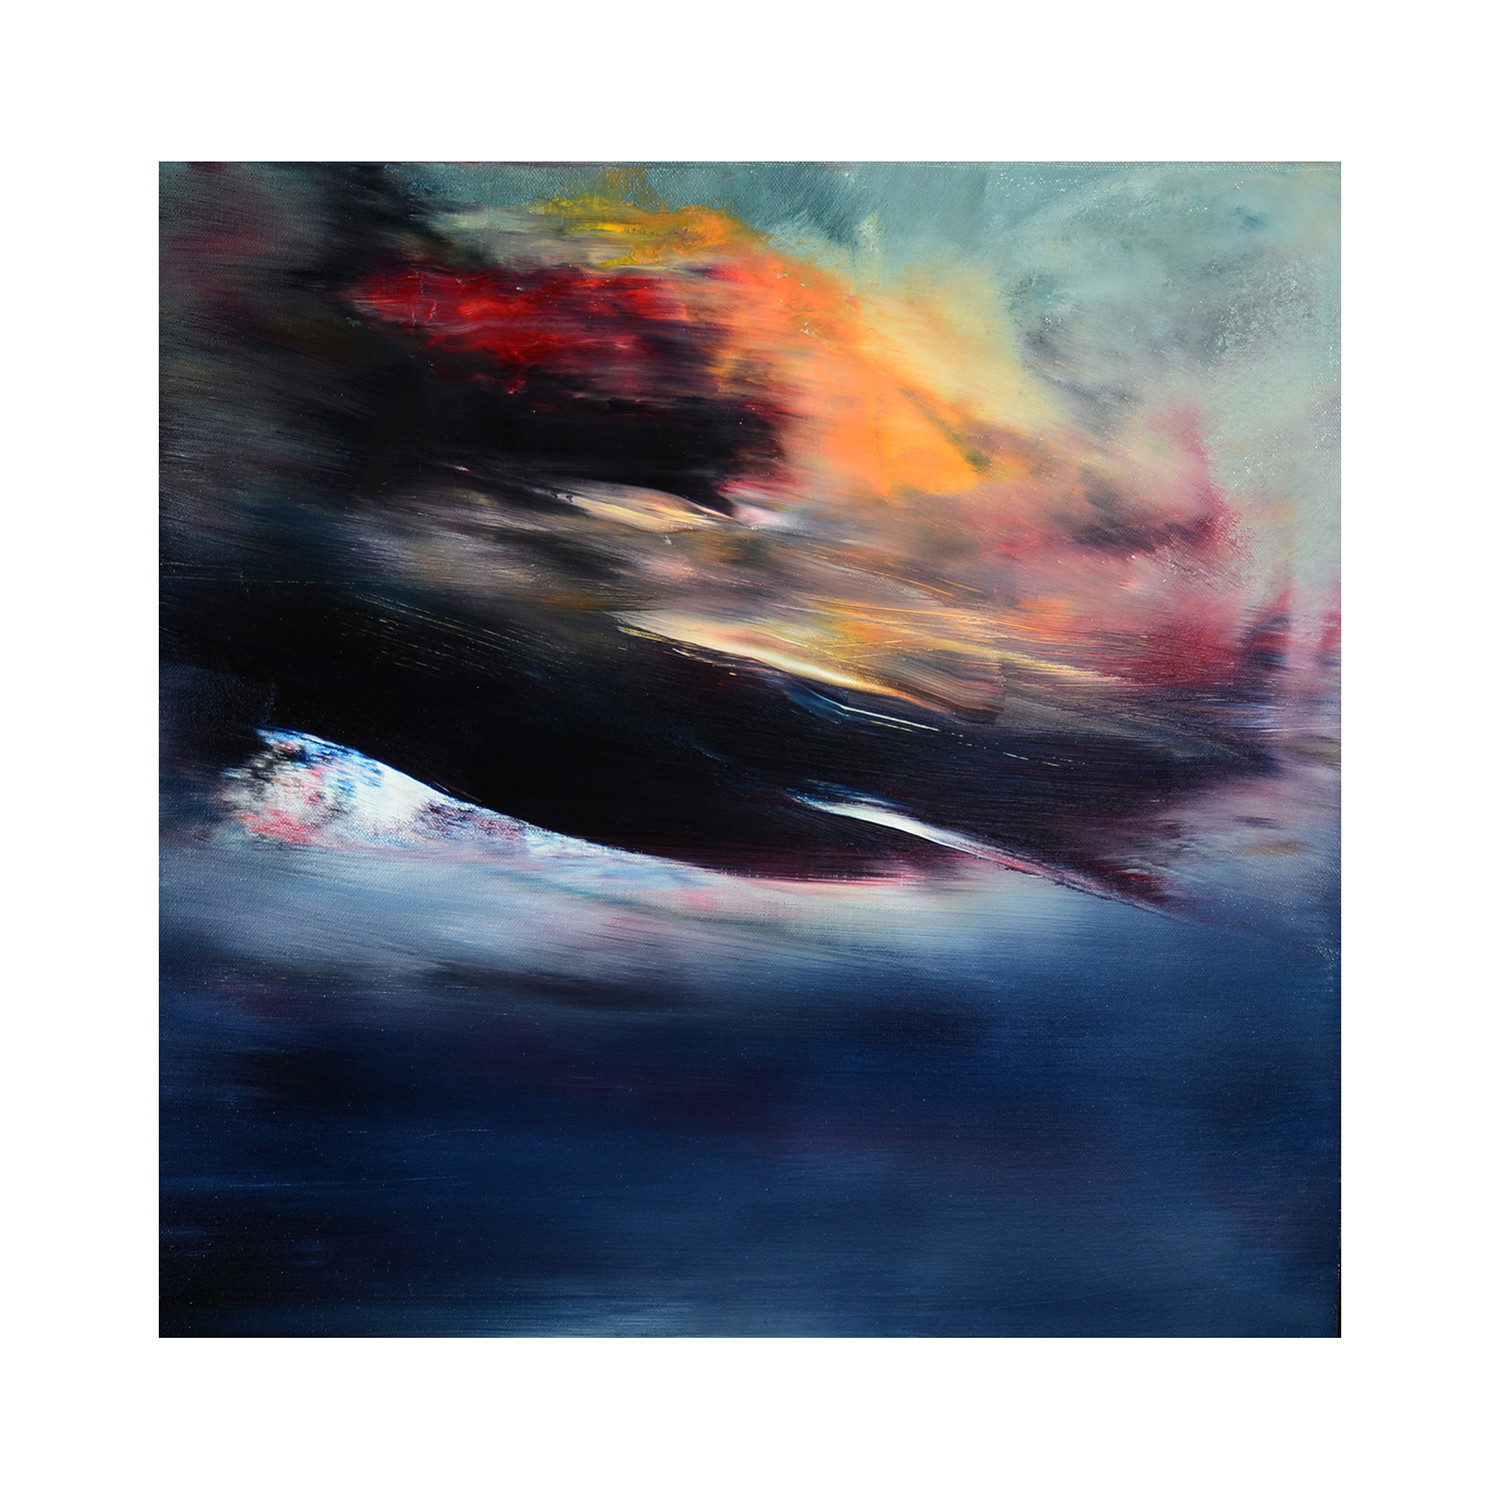 Portent maurice sapiro touch of modern for Sign of portent 3